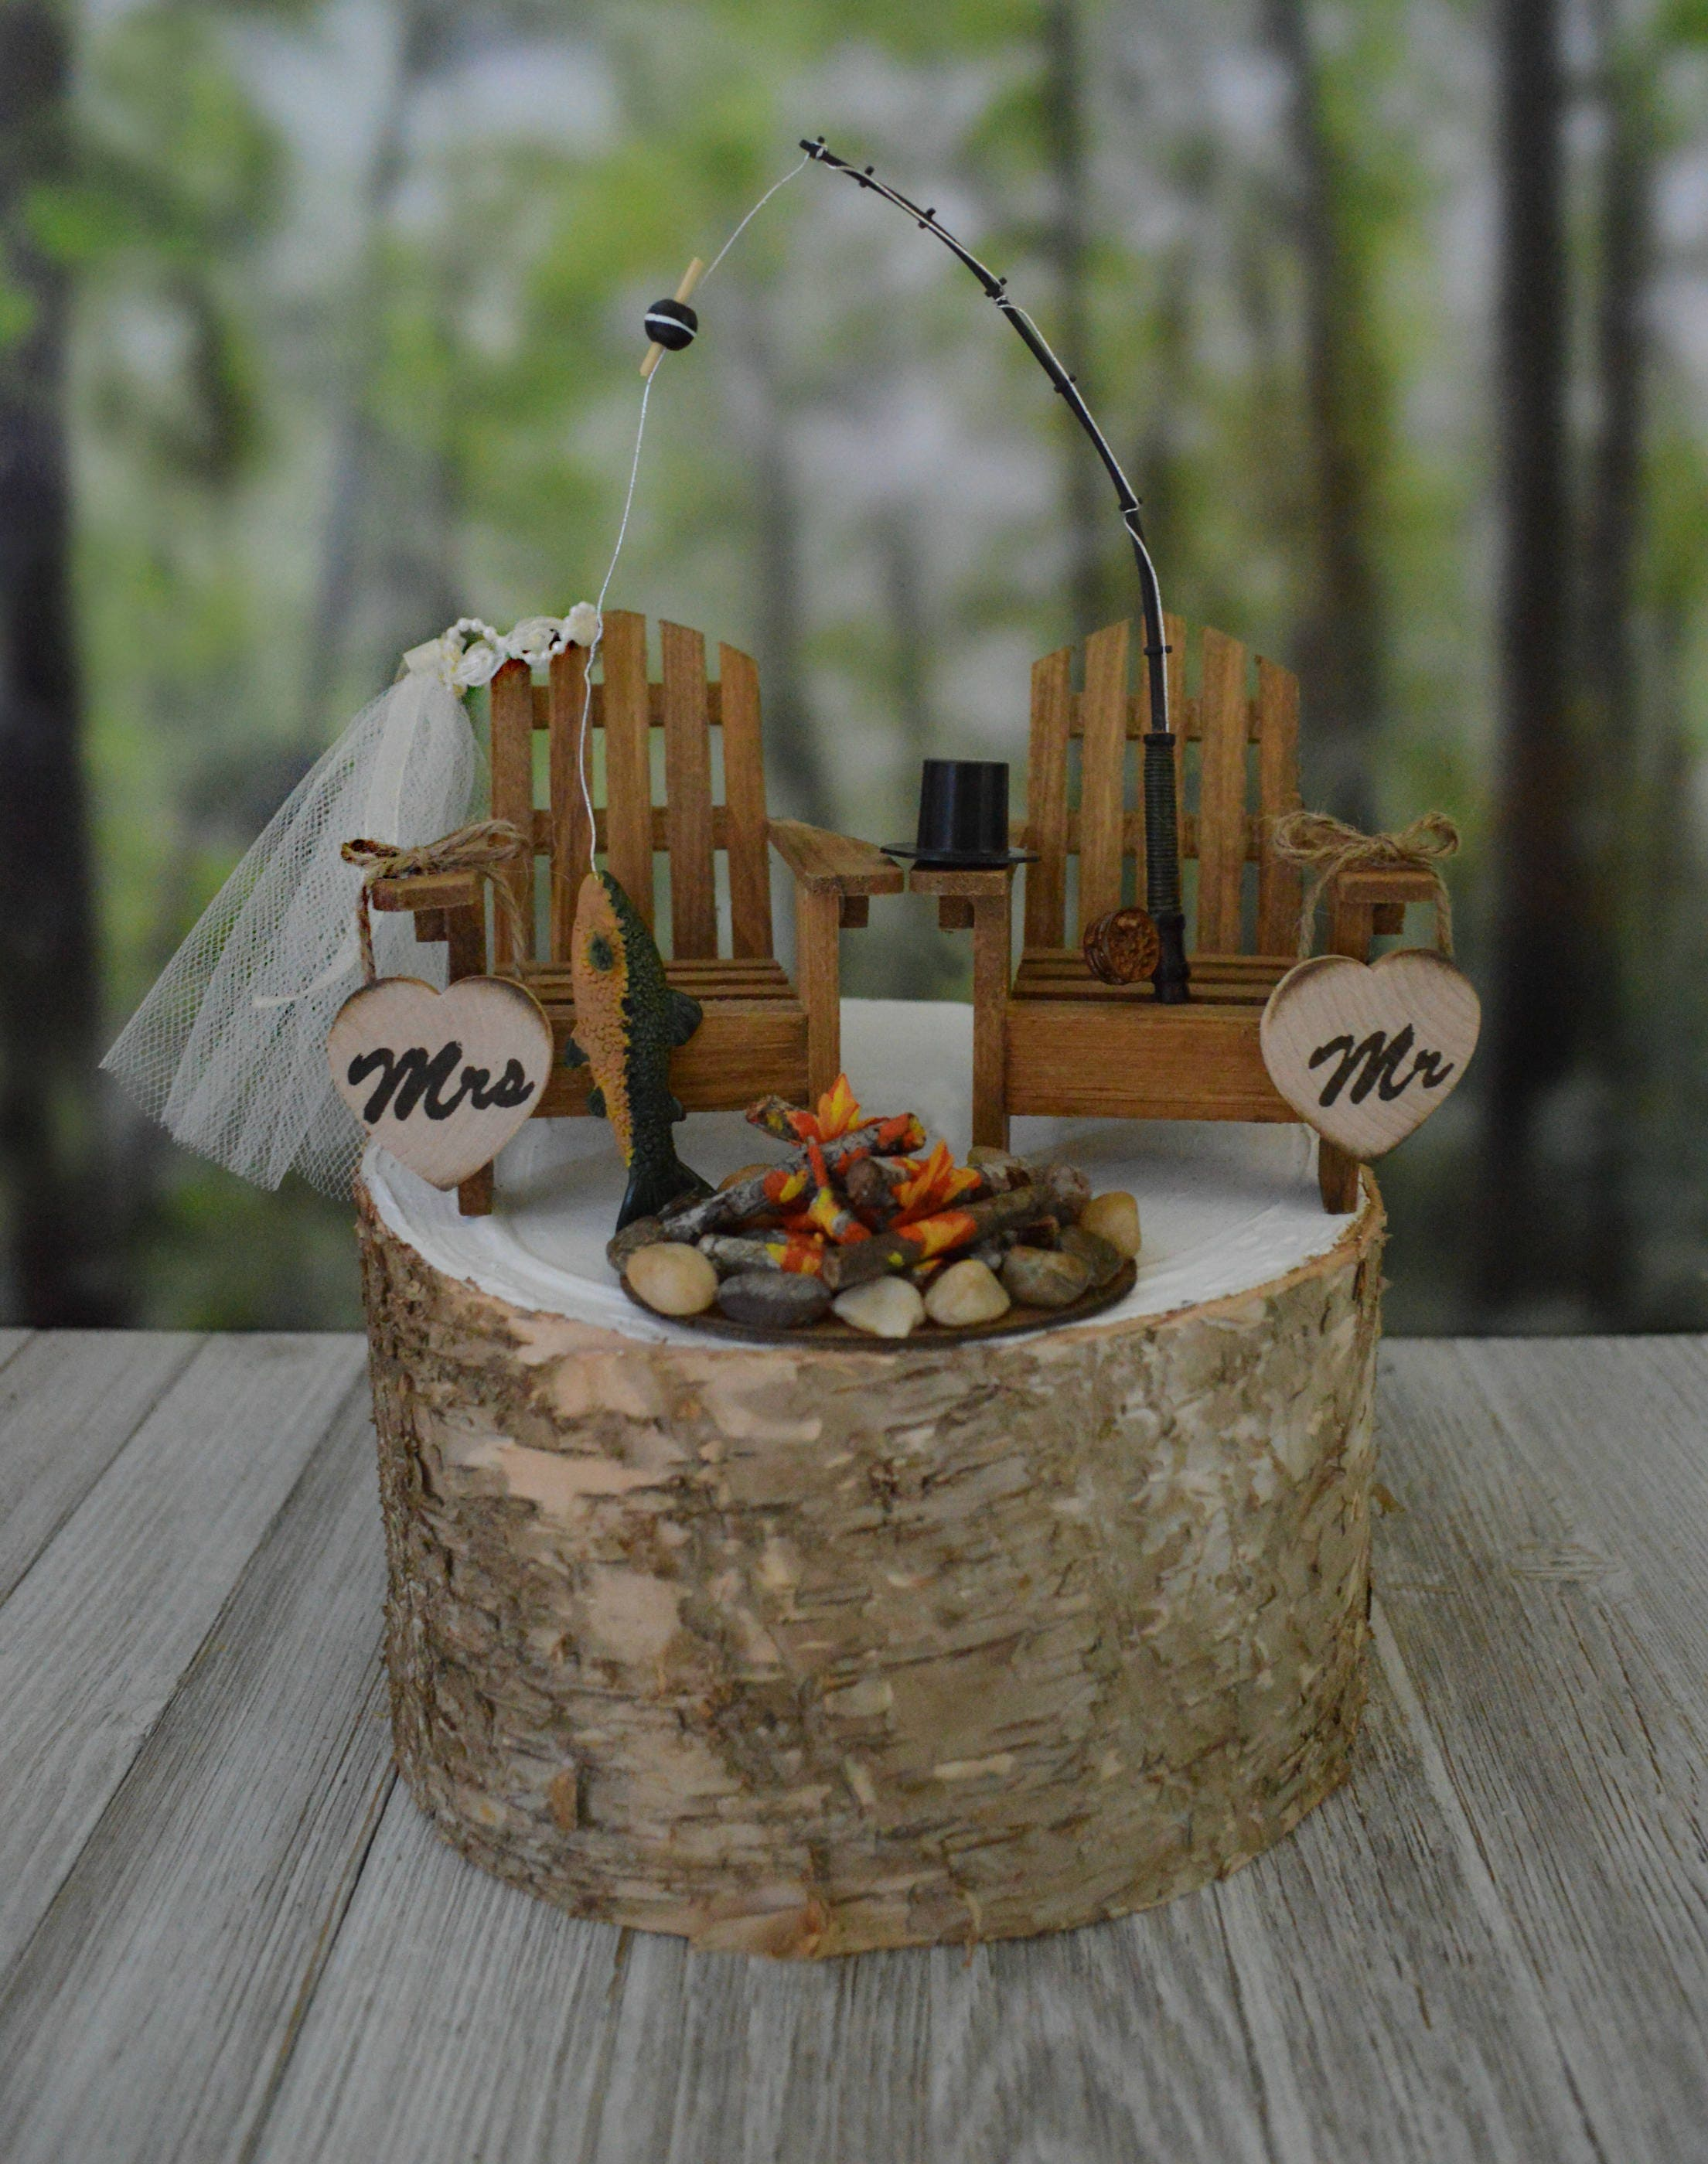 Fishing themed wedding cake topper for rustic country weddings